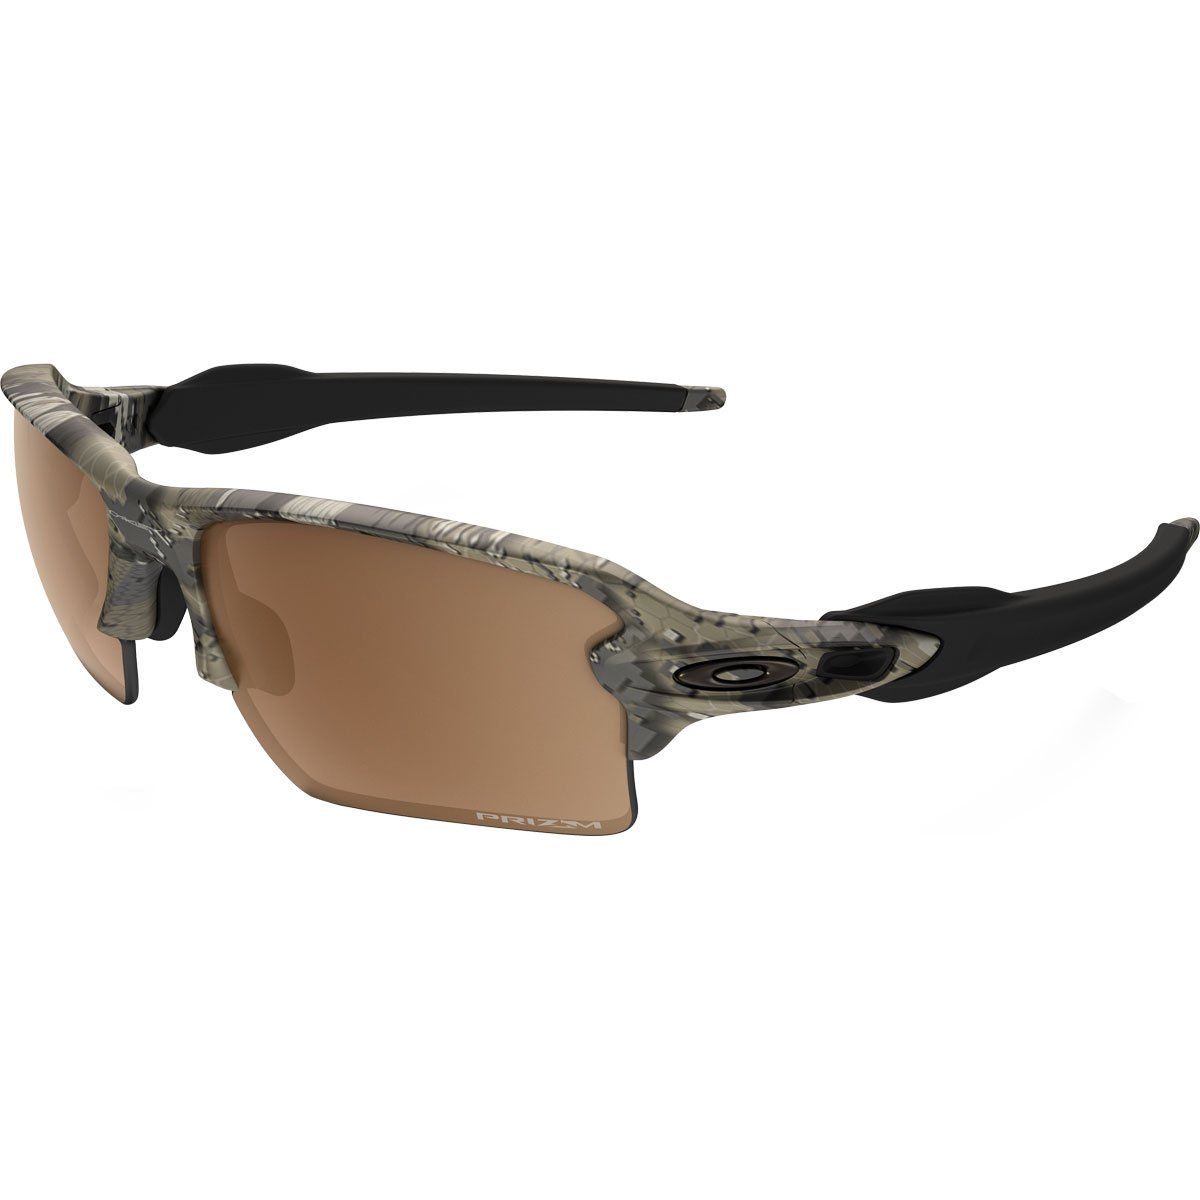 Oakley Men's OO9188 Flak 2.0 XL Rectangular Sunglasses, Desolve Bare Camo/Black Iridium, 59 mm by Oakley